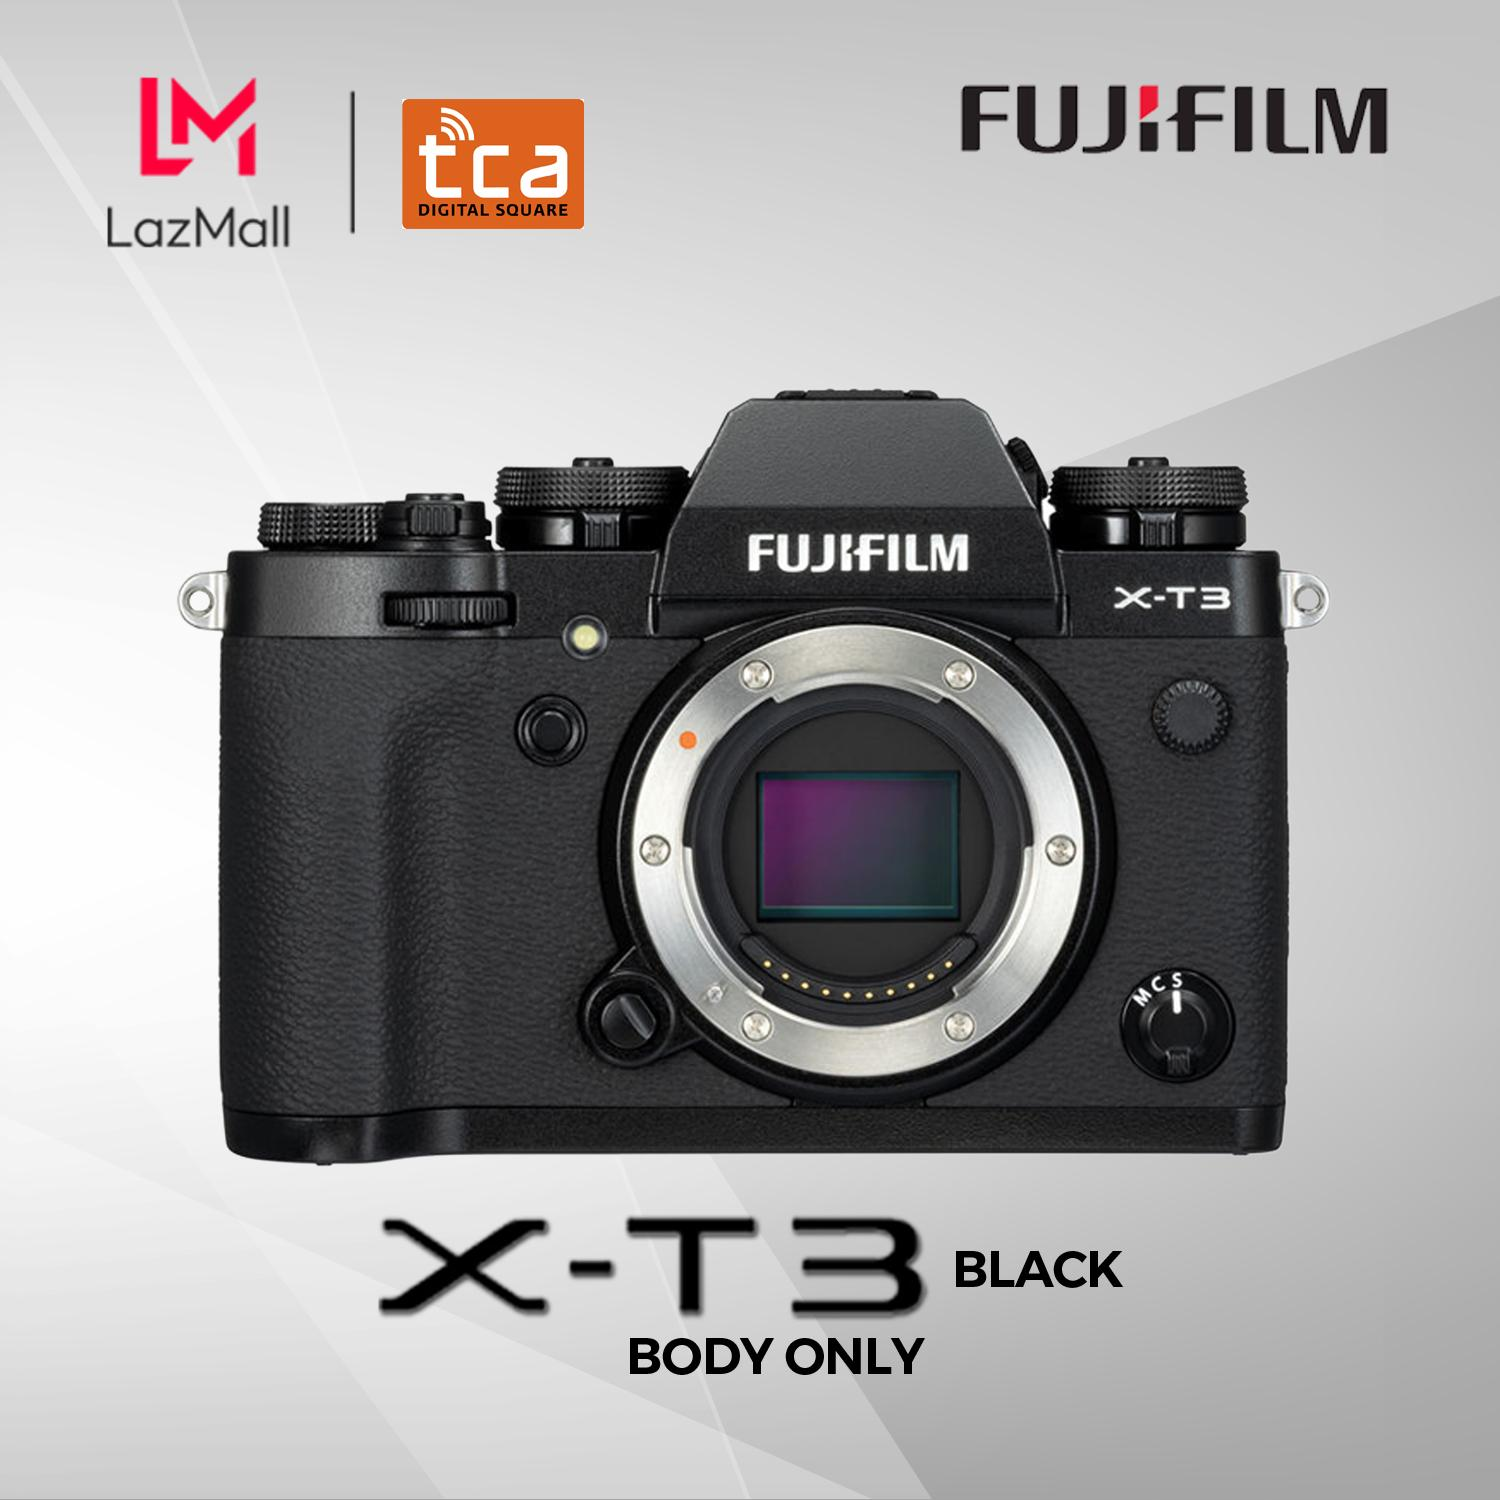 Harga Jual Fujifilm X T1 Graphite Silver Body Only Terbaru 2018 Balmer B7913ml Jam Tangan Couple Hitam Rosegold Philippines Mirrorless Camera For Sale Prices T3 I 261megapixel